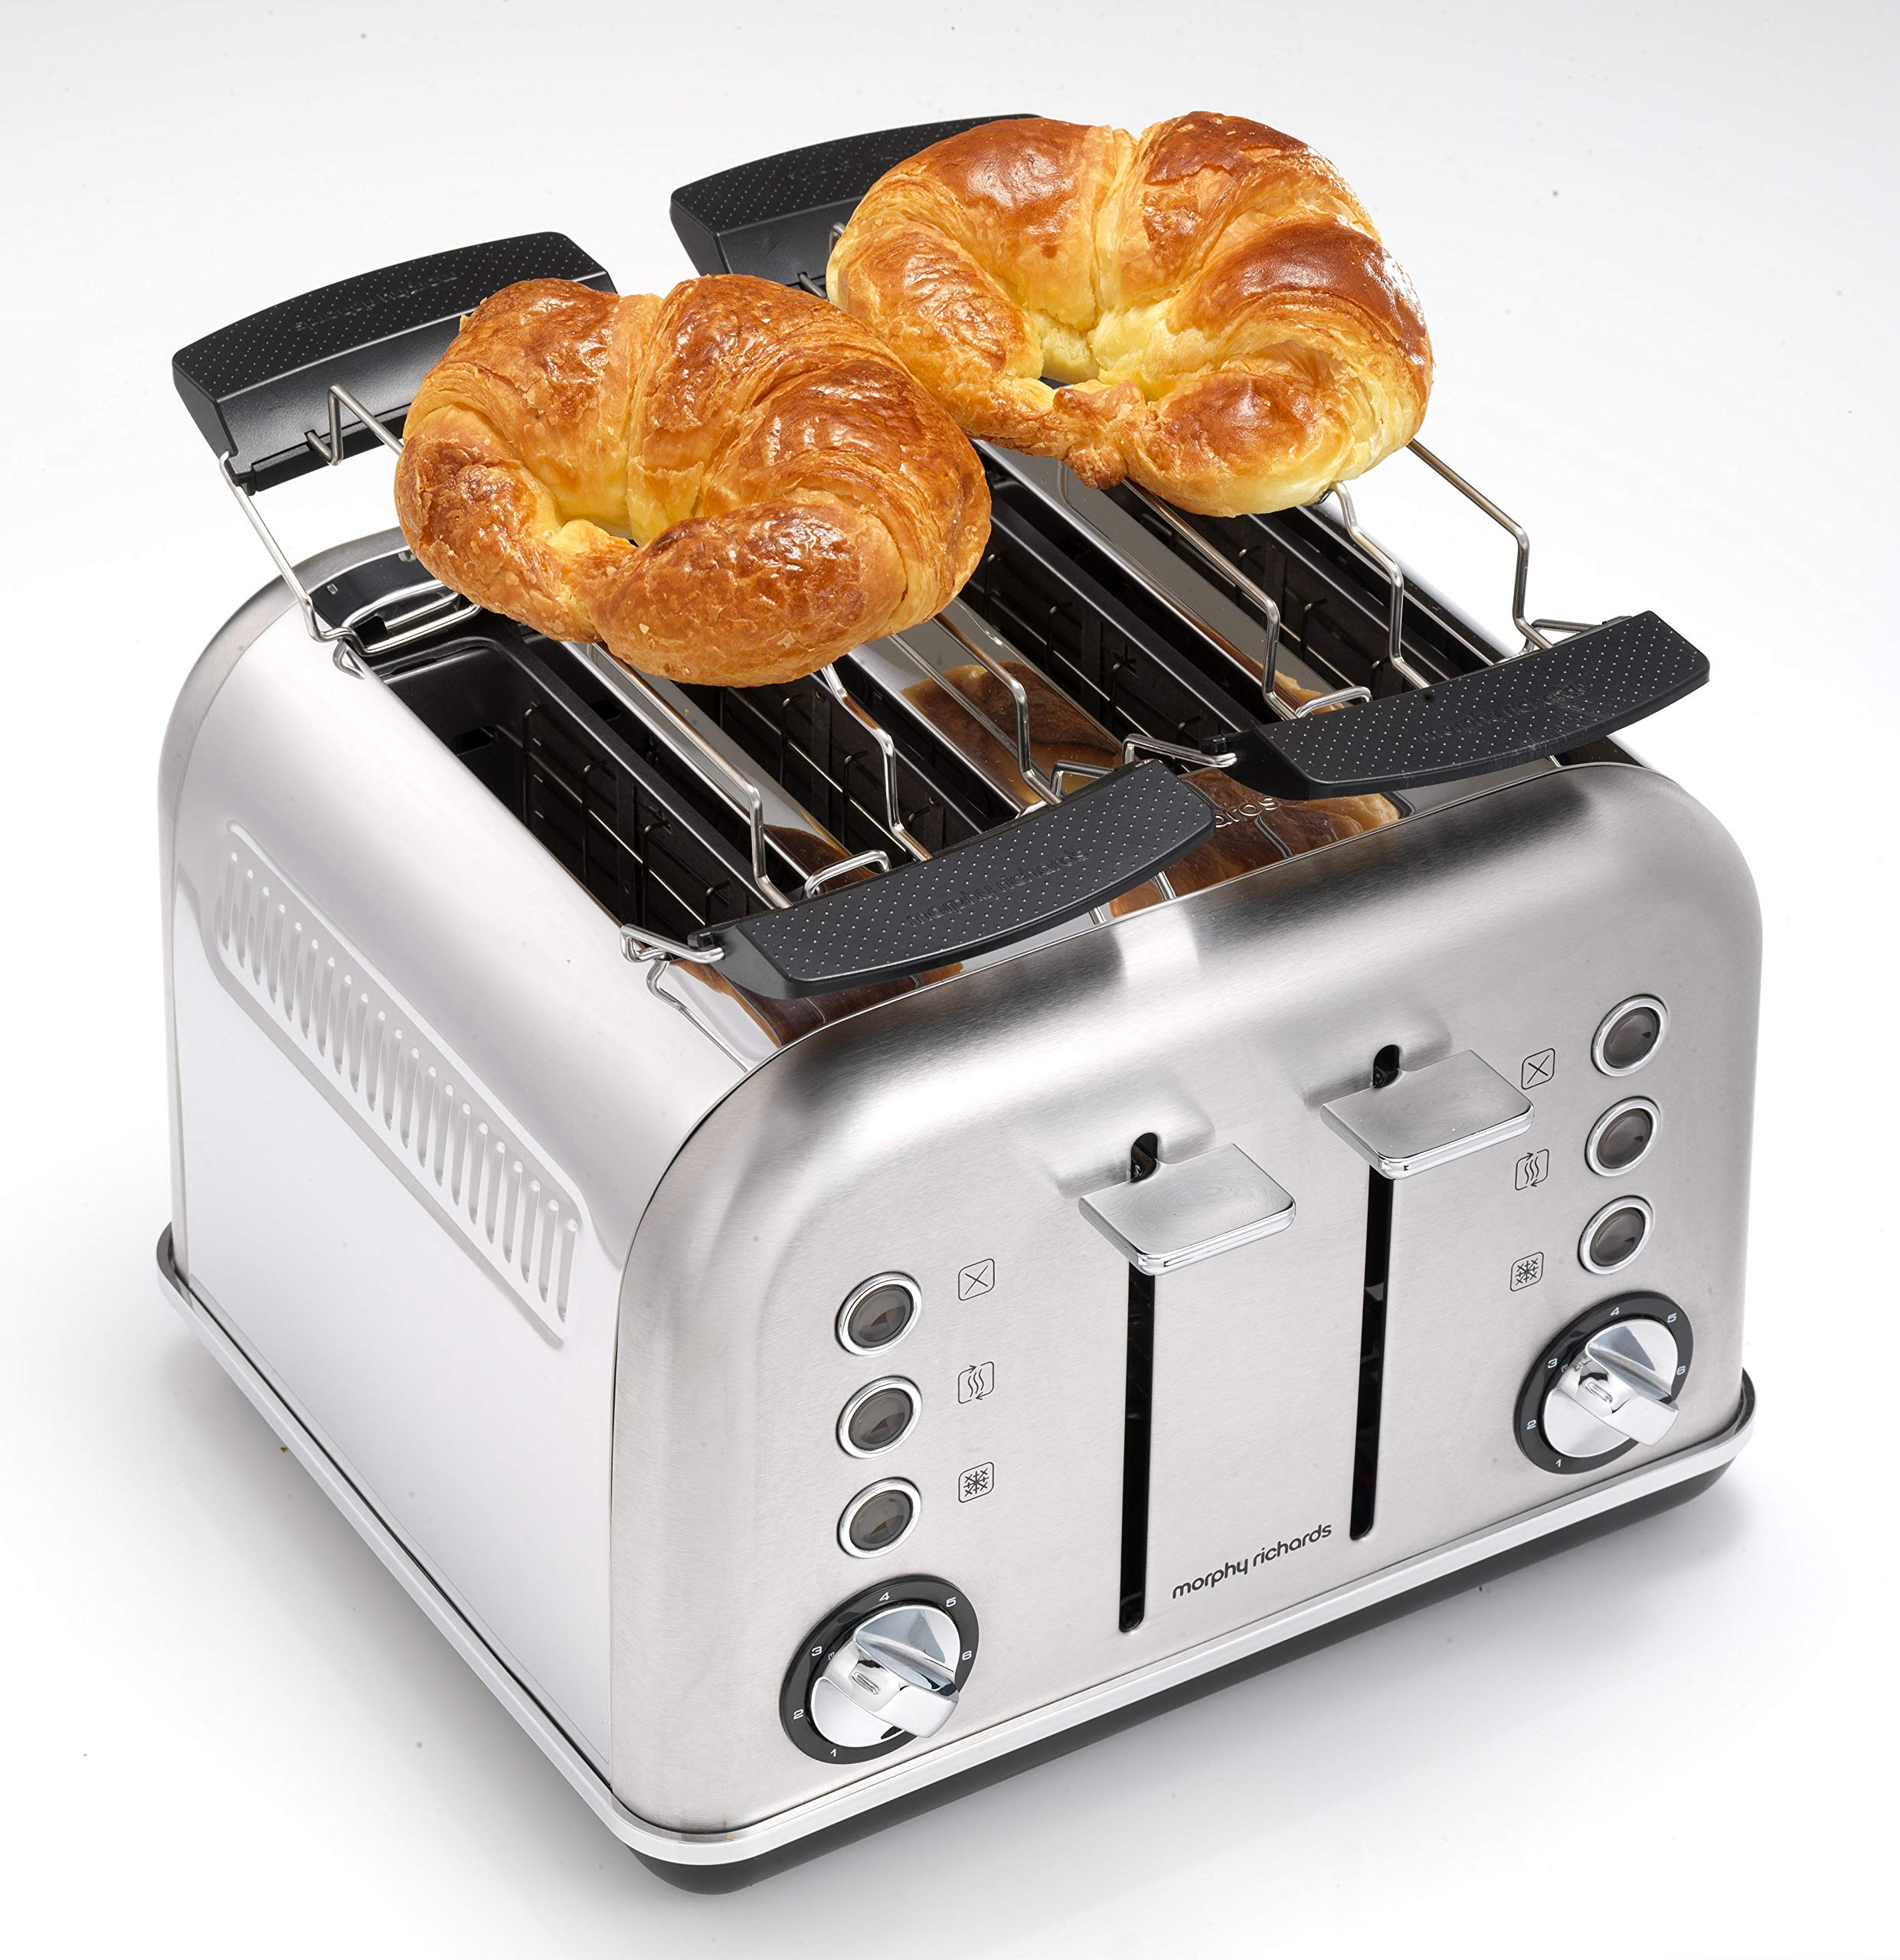 Morphy-Richards-270001EE-Universal-Brtchenaufsatz-Toaster